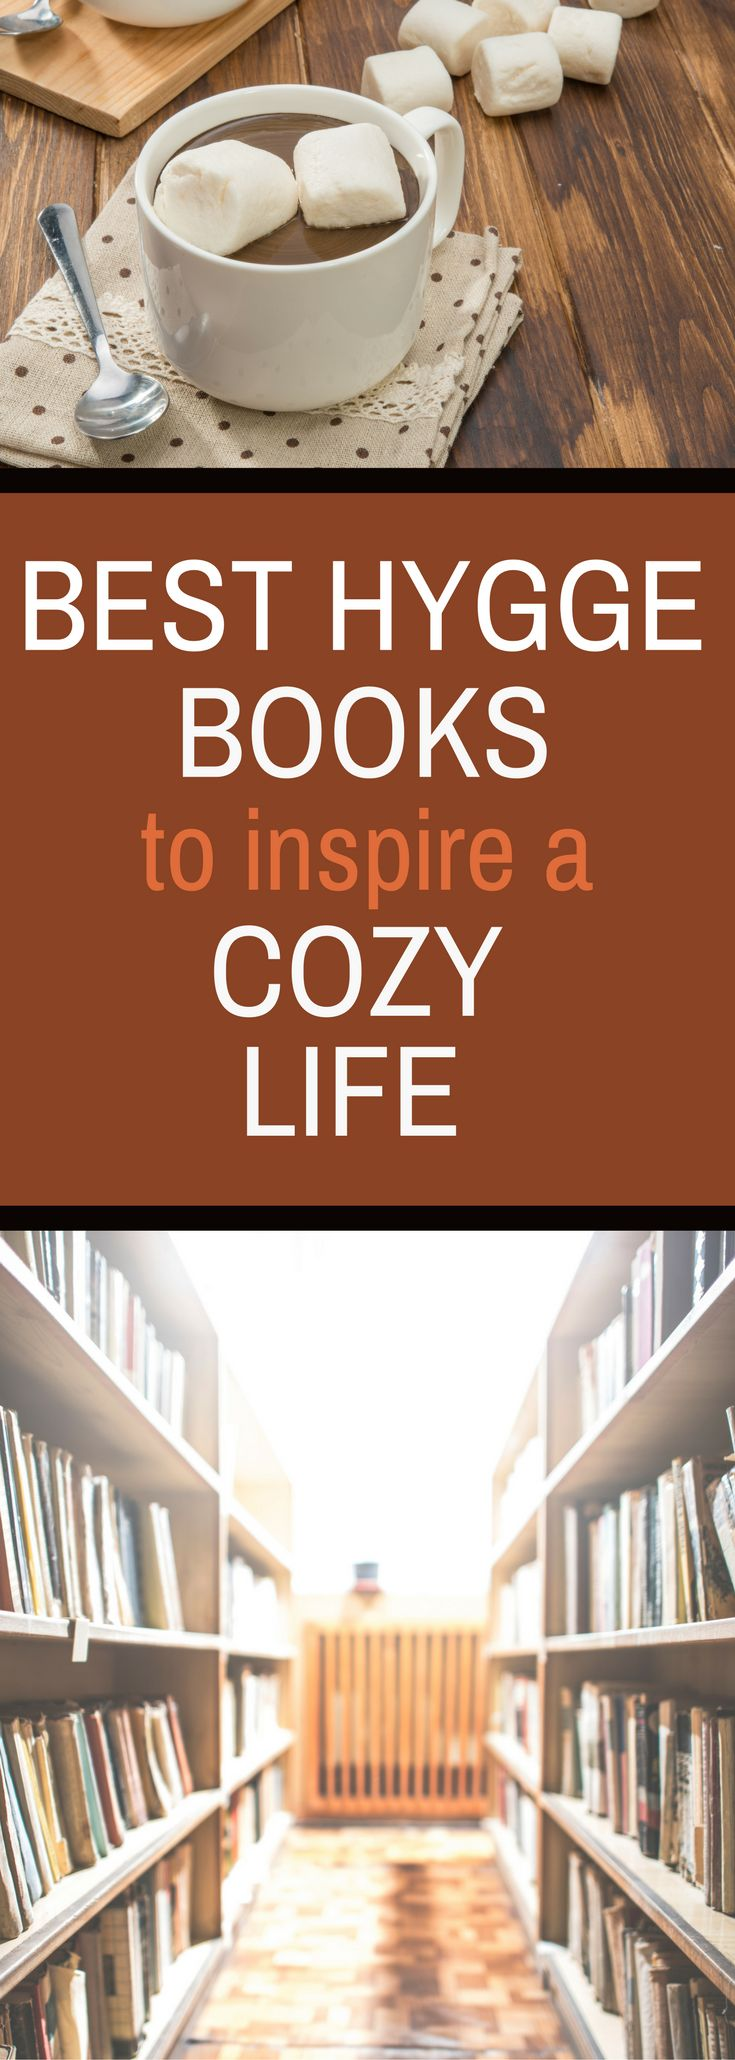 Best Hygge Books to Inspire a Cozy Life - Learn More About Creating a Life You Love